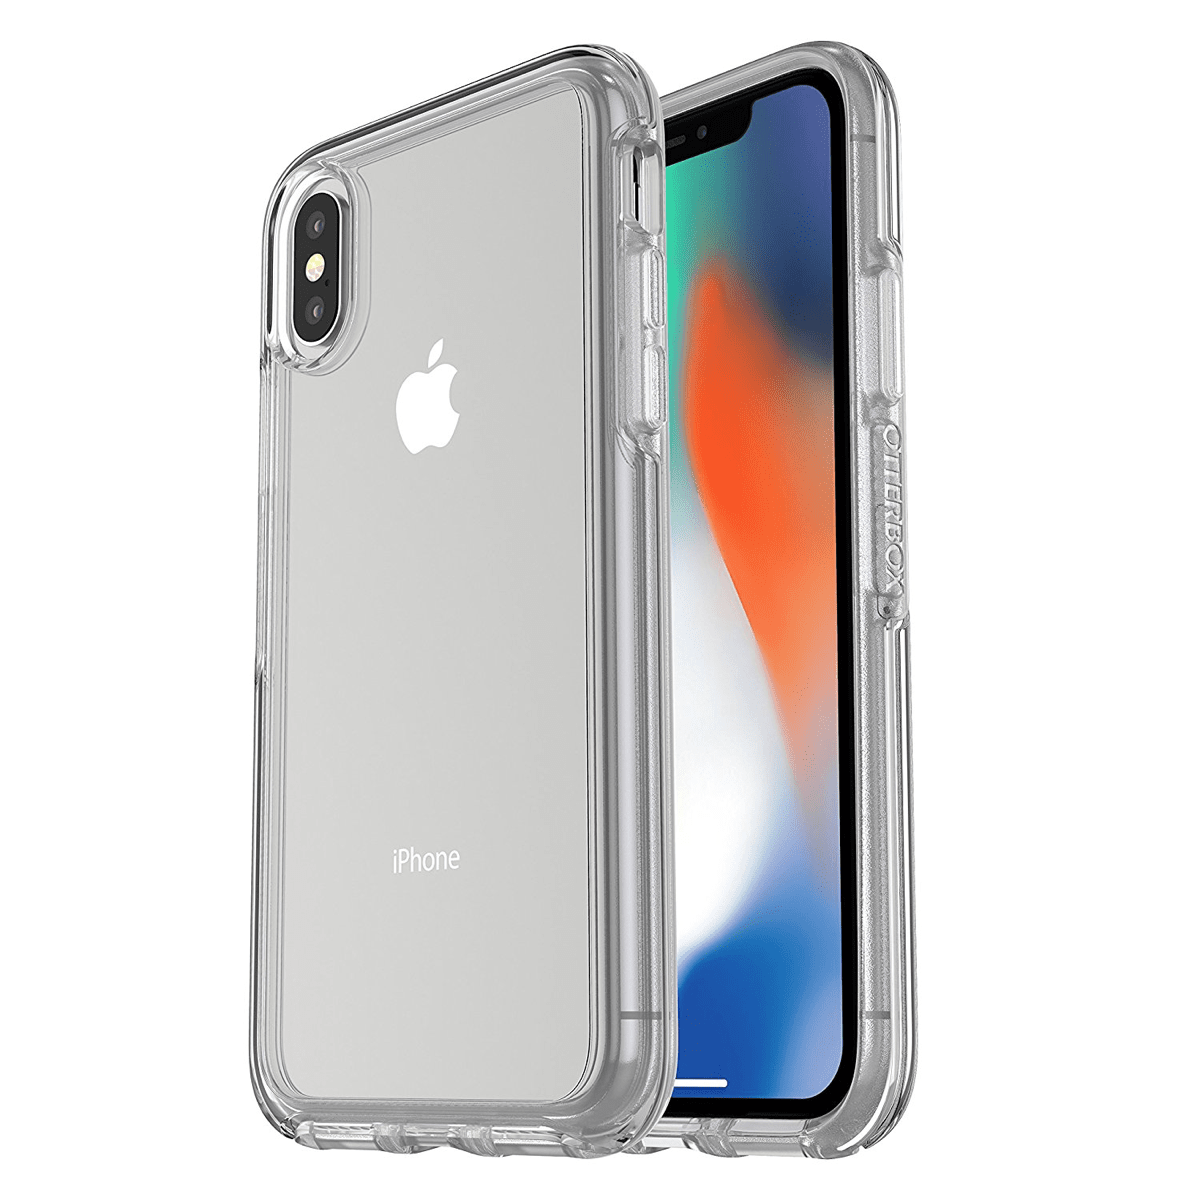 Iphone Clear Case Amazon